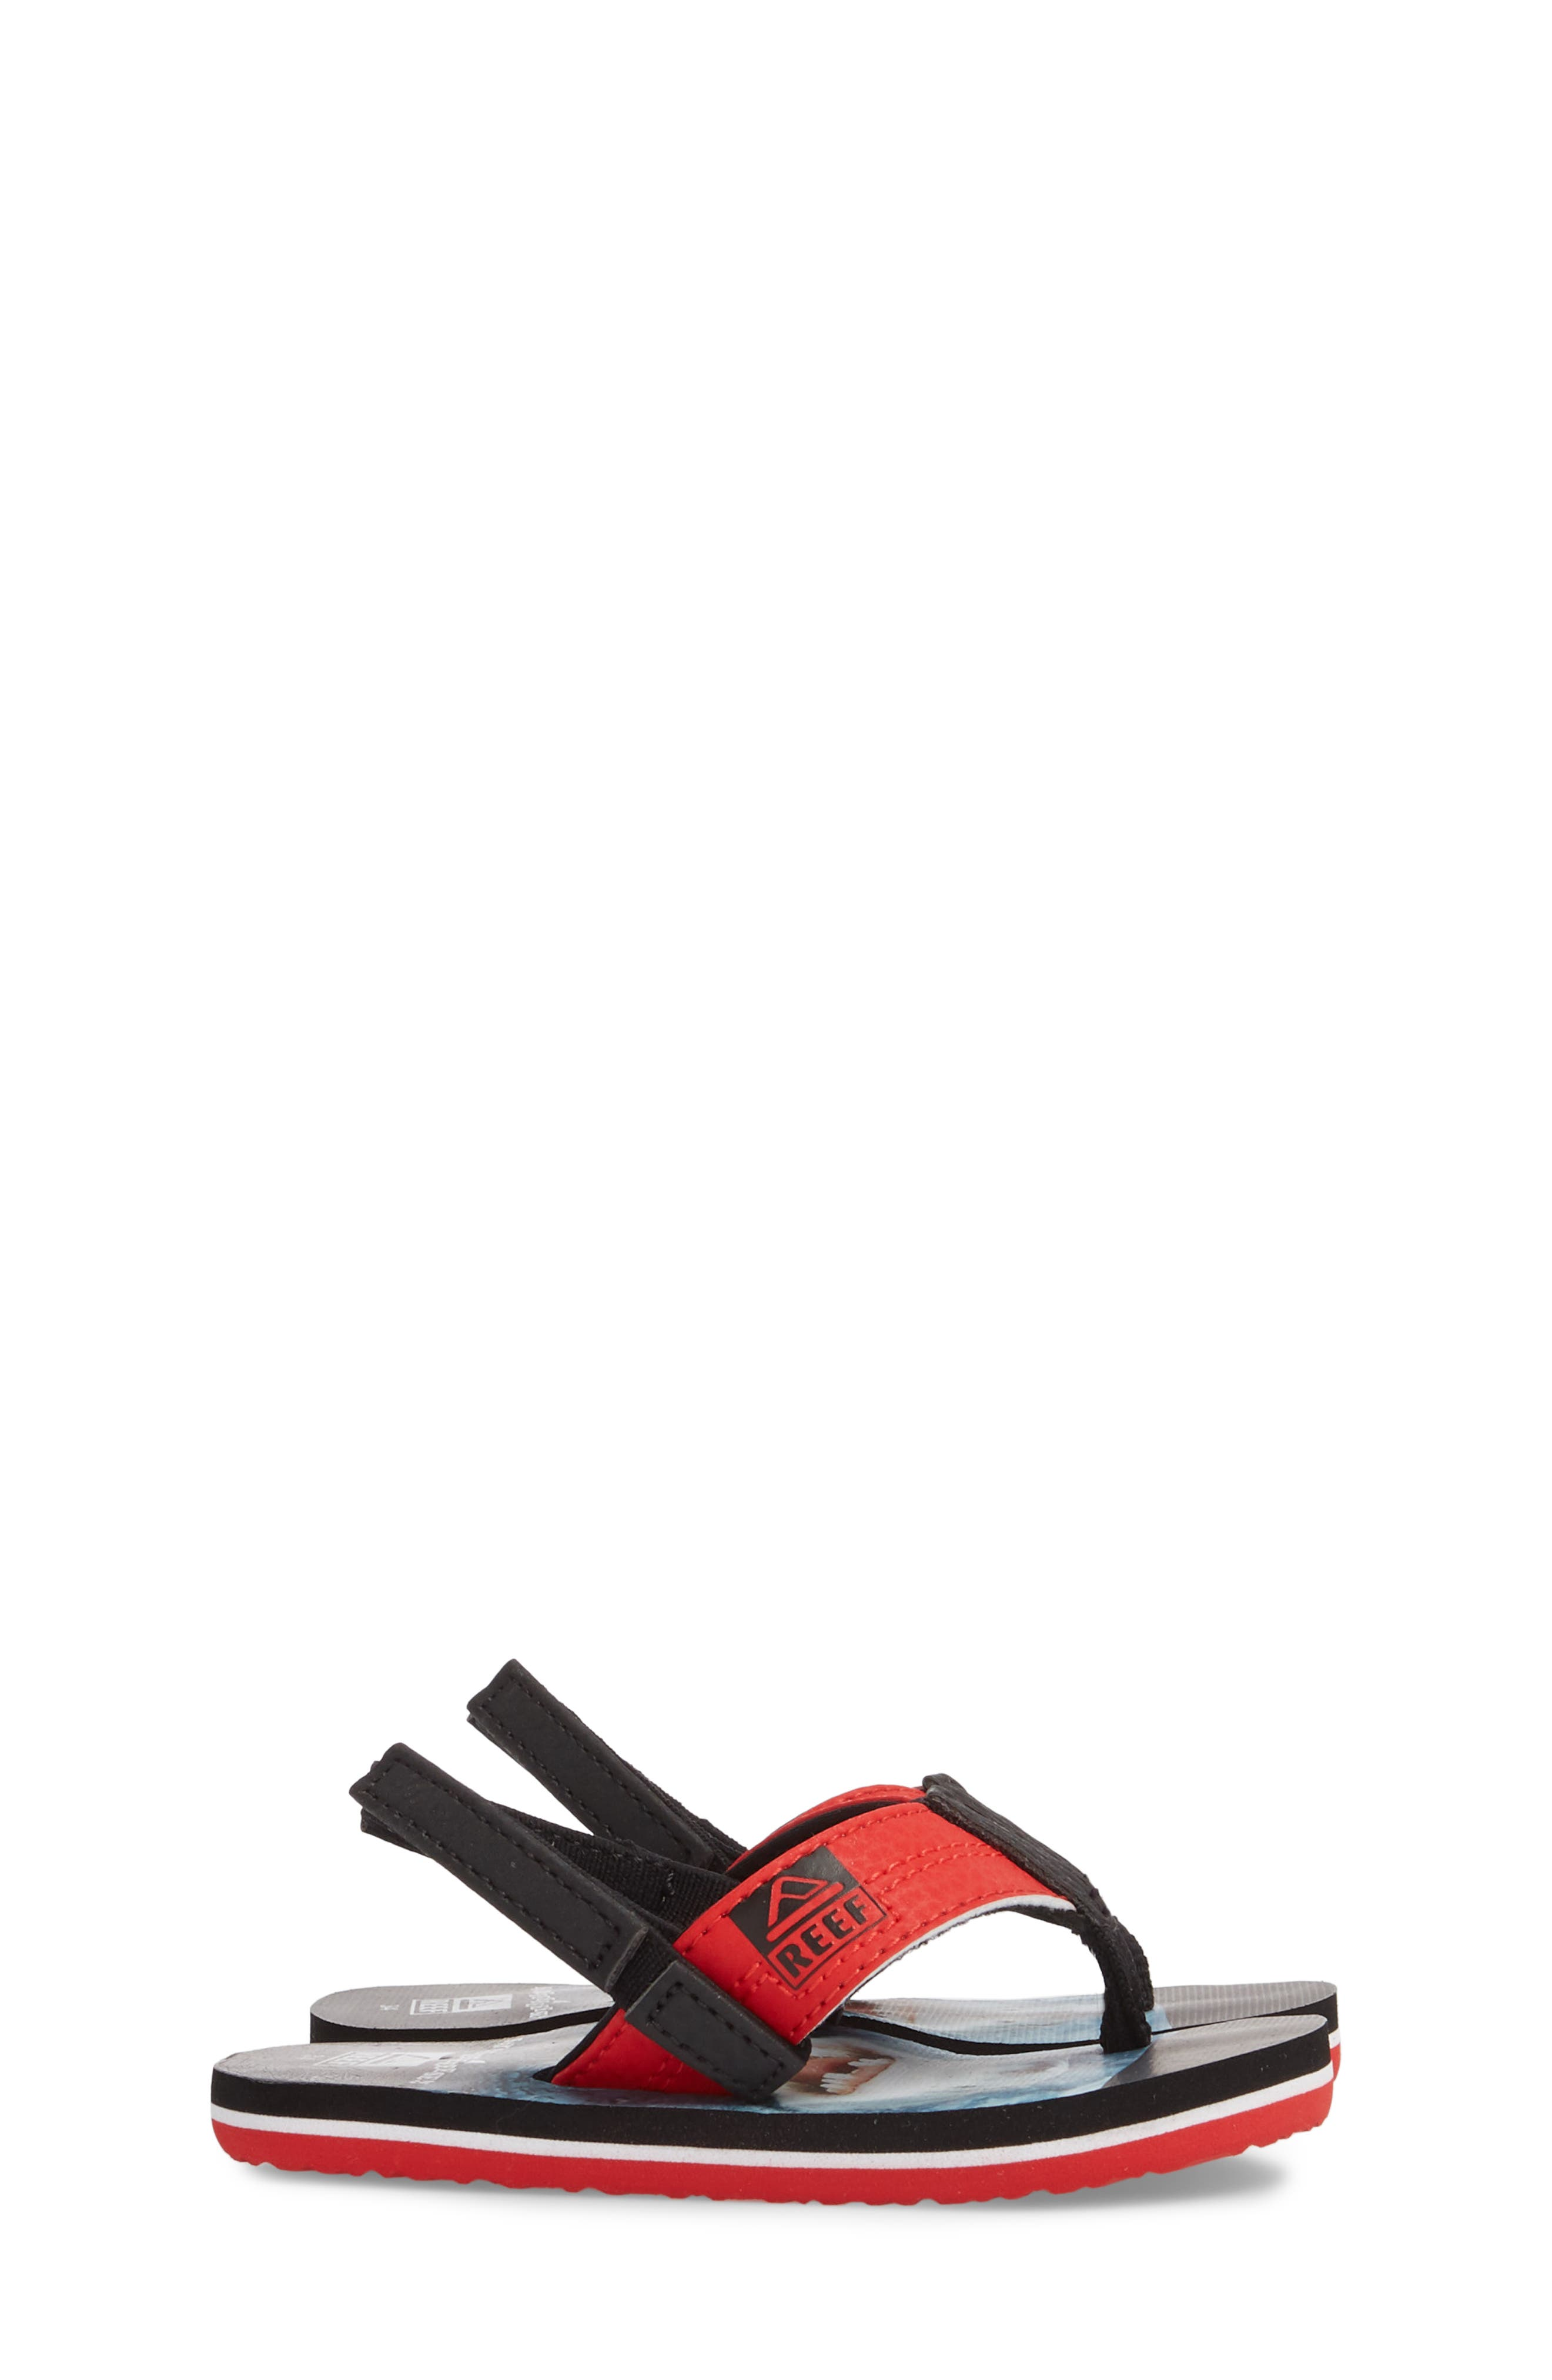 Grom Photo Print Flip Flop,                             Alternate thumbnail 4, color,                             Red